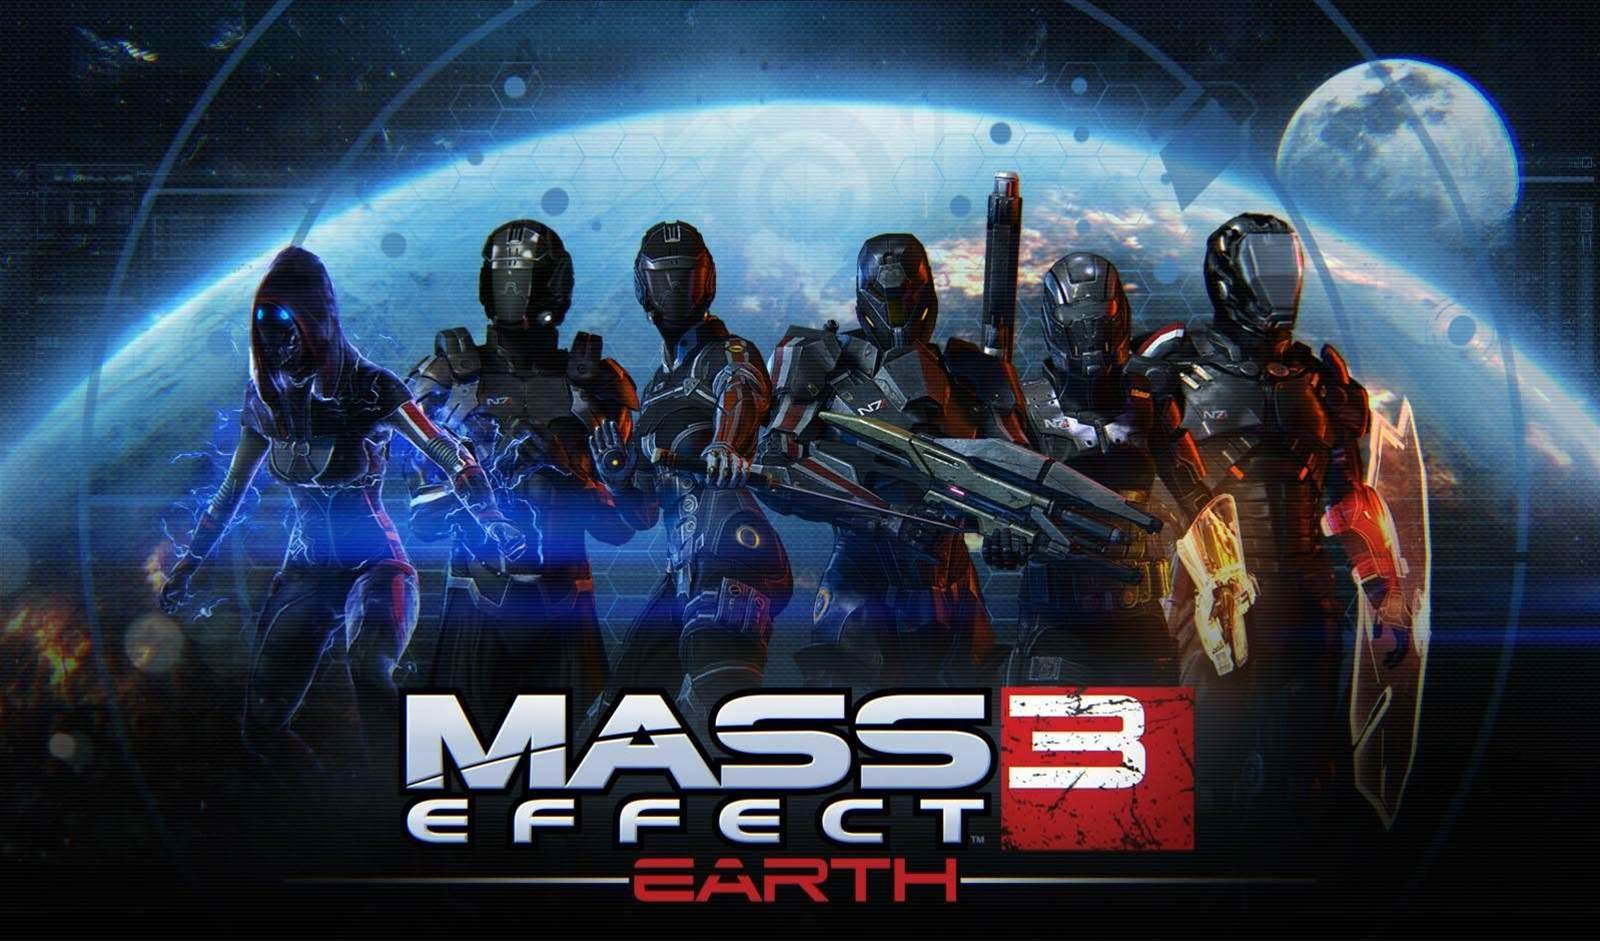 Mass Effect 3: Earth brings new maps, characters and weapons to multiplayer